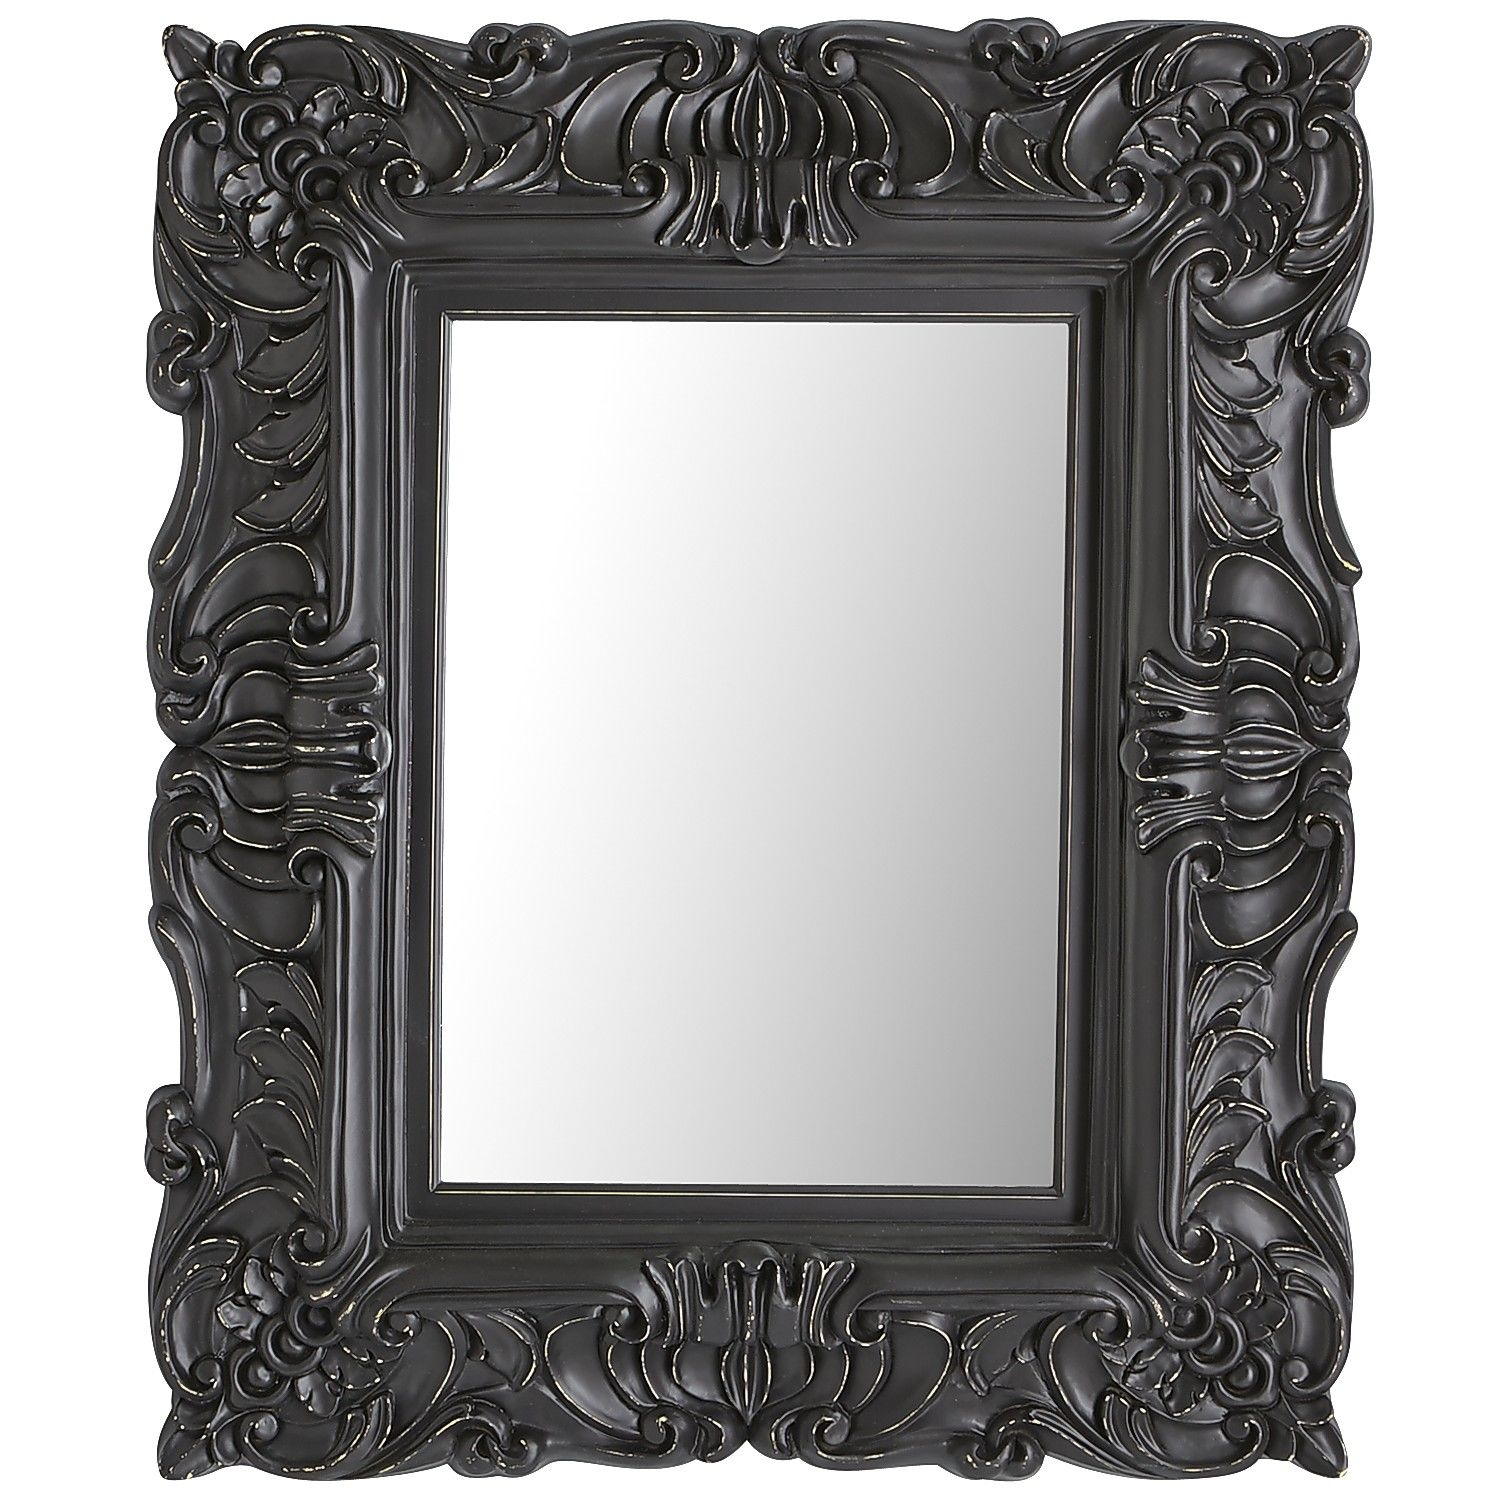 Black Baroque Mirror Pier 1 Imports Mirror Mirror On The Wall Regarding Black Baroque Mirror (Image 9 of 15)